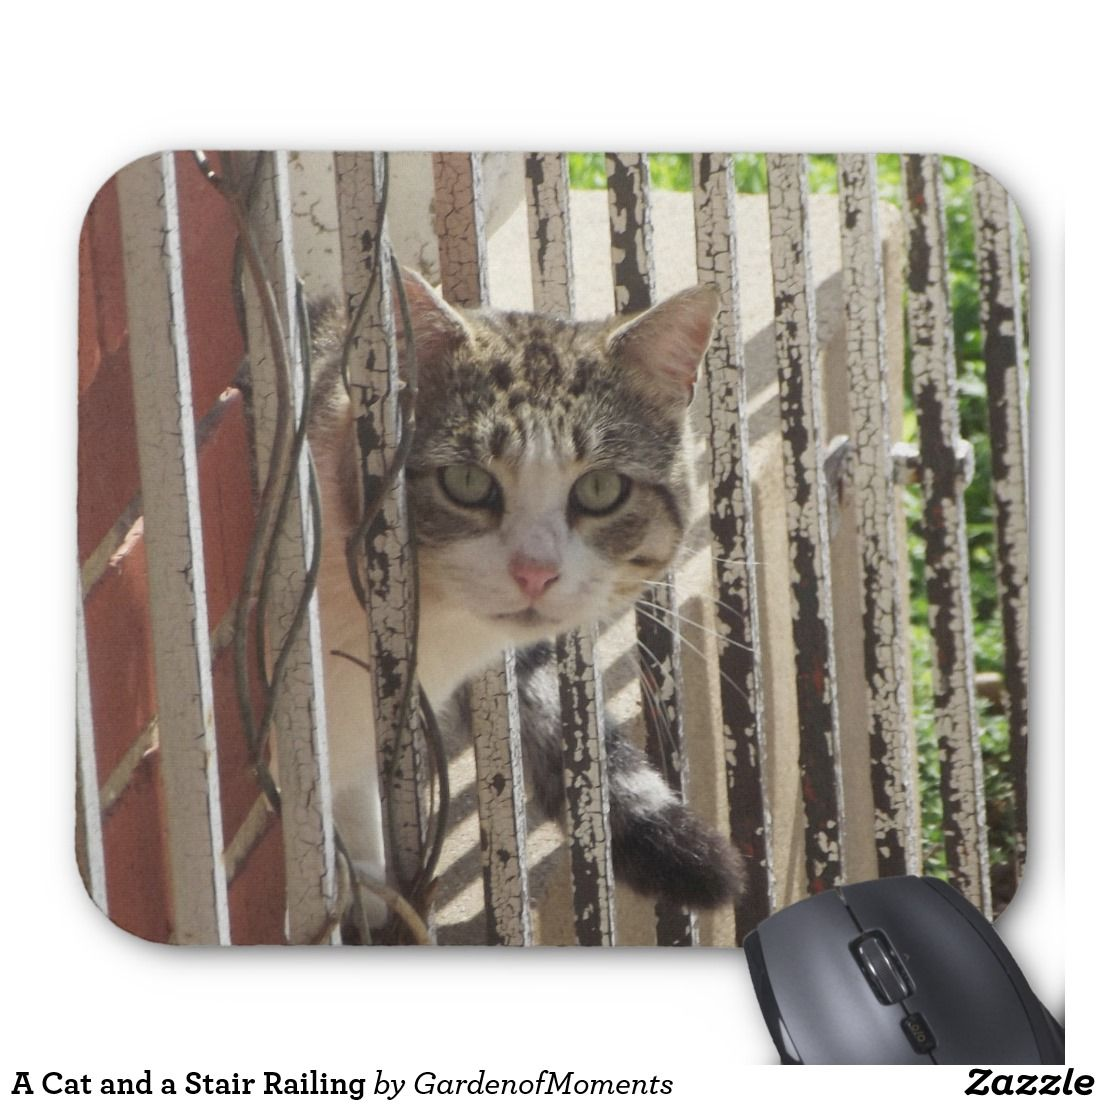 A Grey And White Tabby Cat Peeking Around A Stair Railing Mouse Pad Designed By Garden Of Moments White Tabby Cat Tabby Cat Cat Mouse